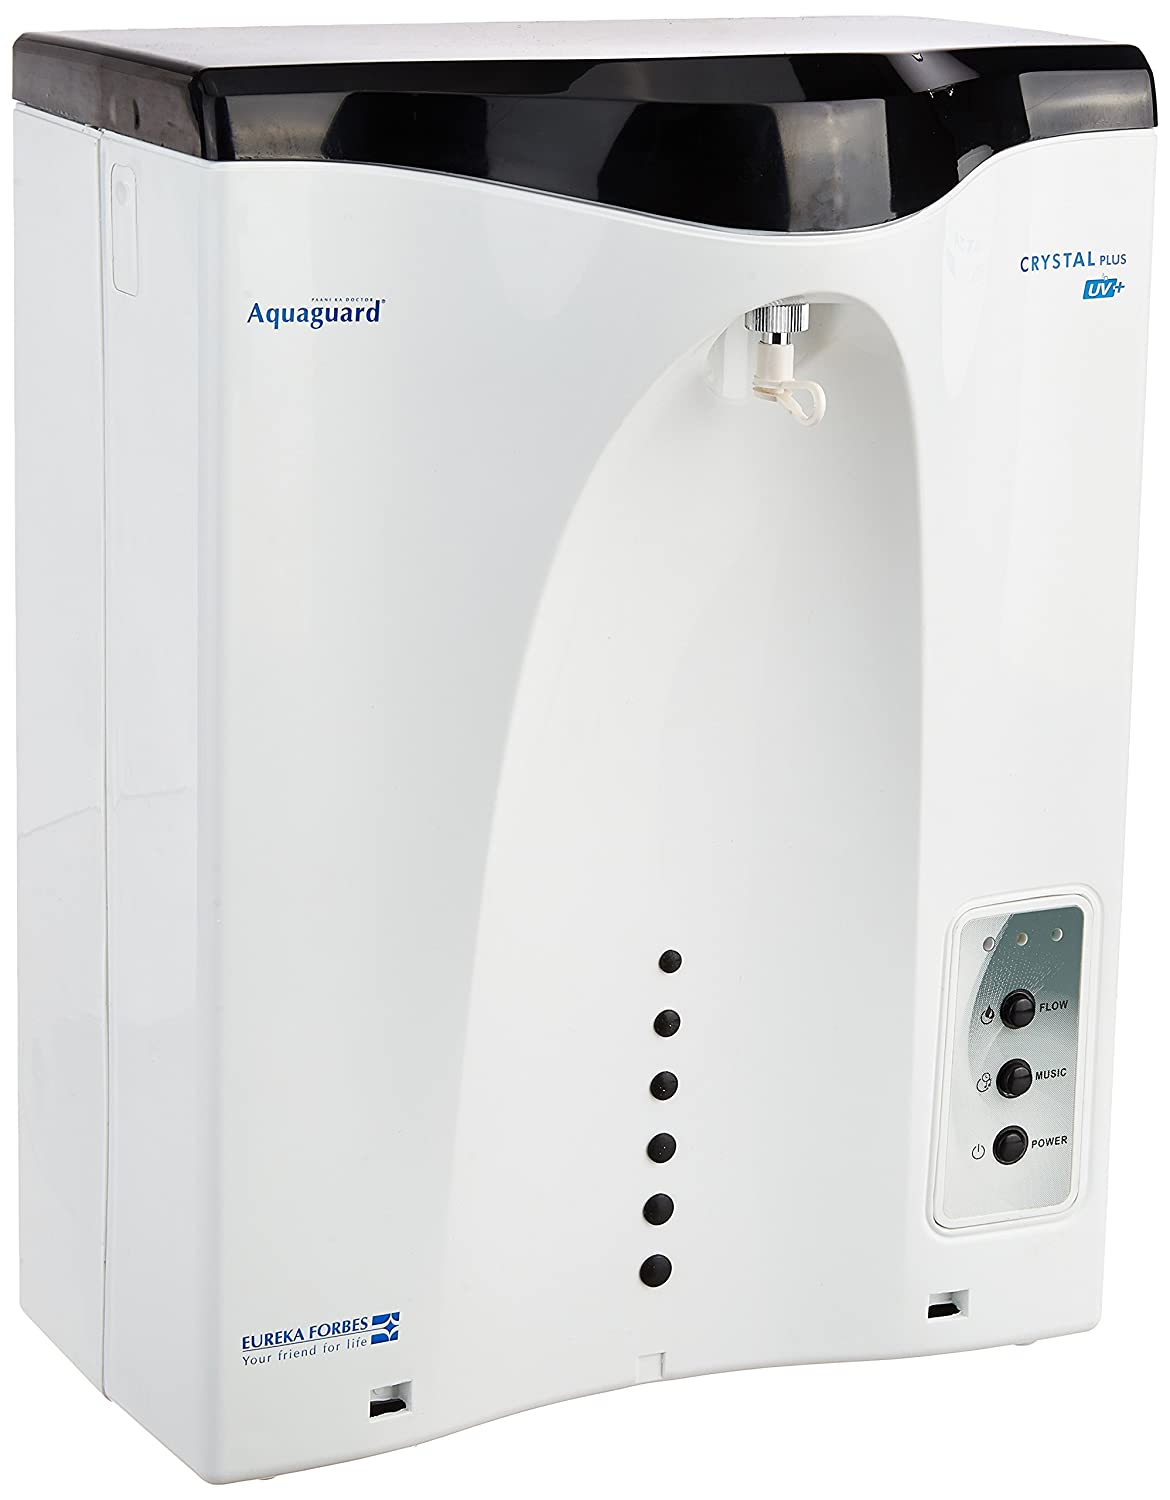 9cd3aac39f88c Eureka Forbes Aquaguard Crystal Plus UV Water Purifier, White